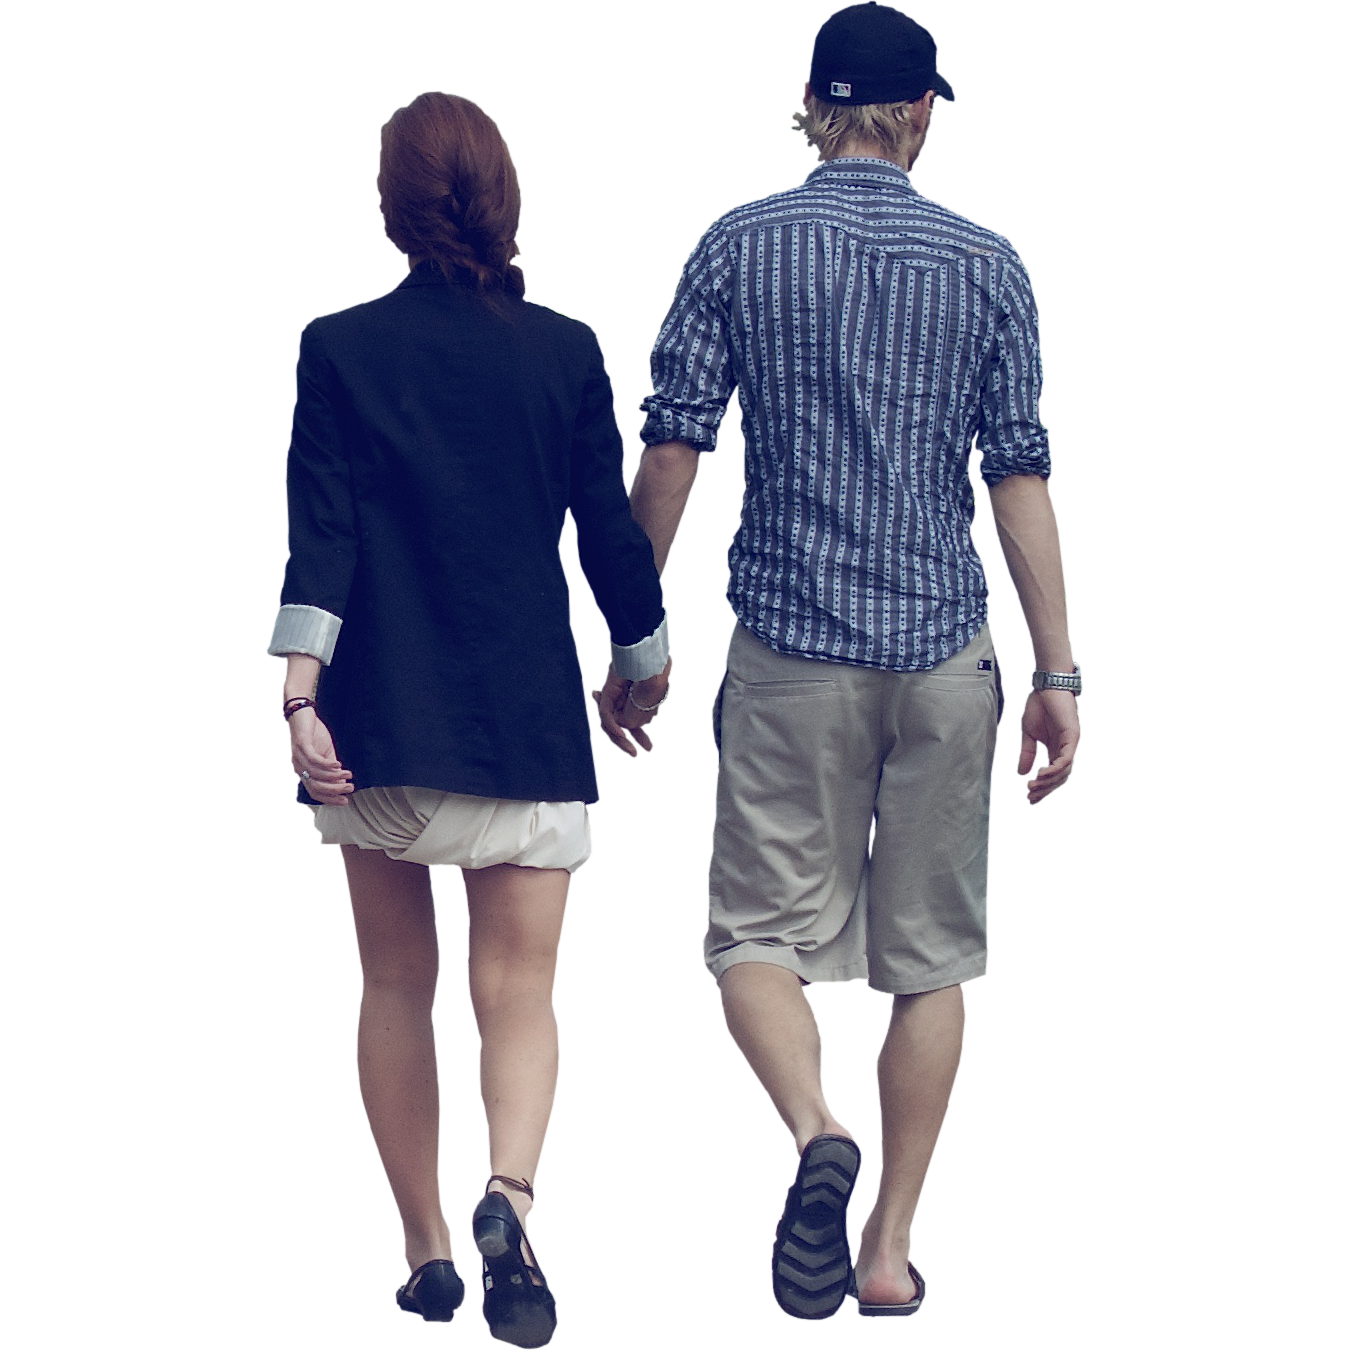 Couple walking away png. People transparent pictures free